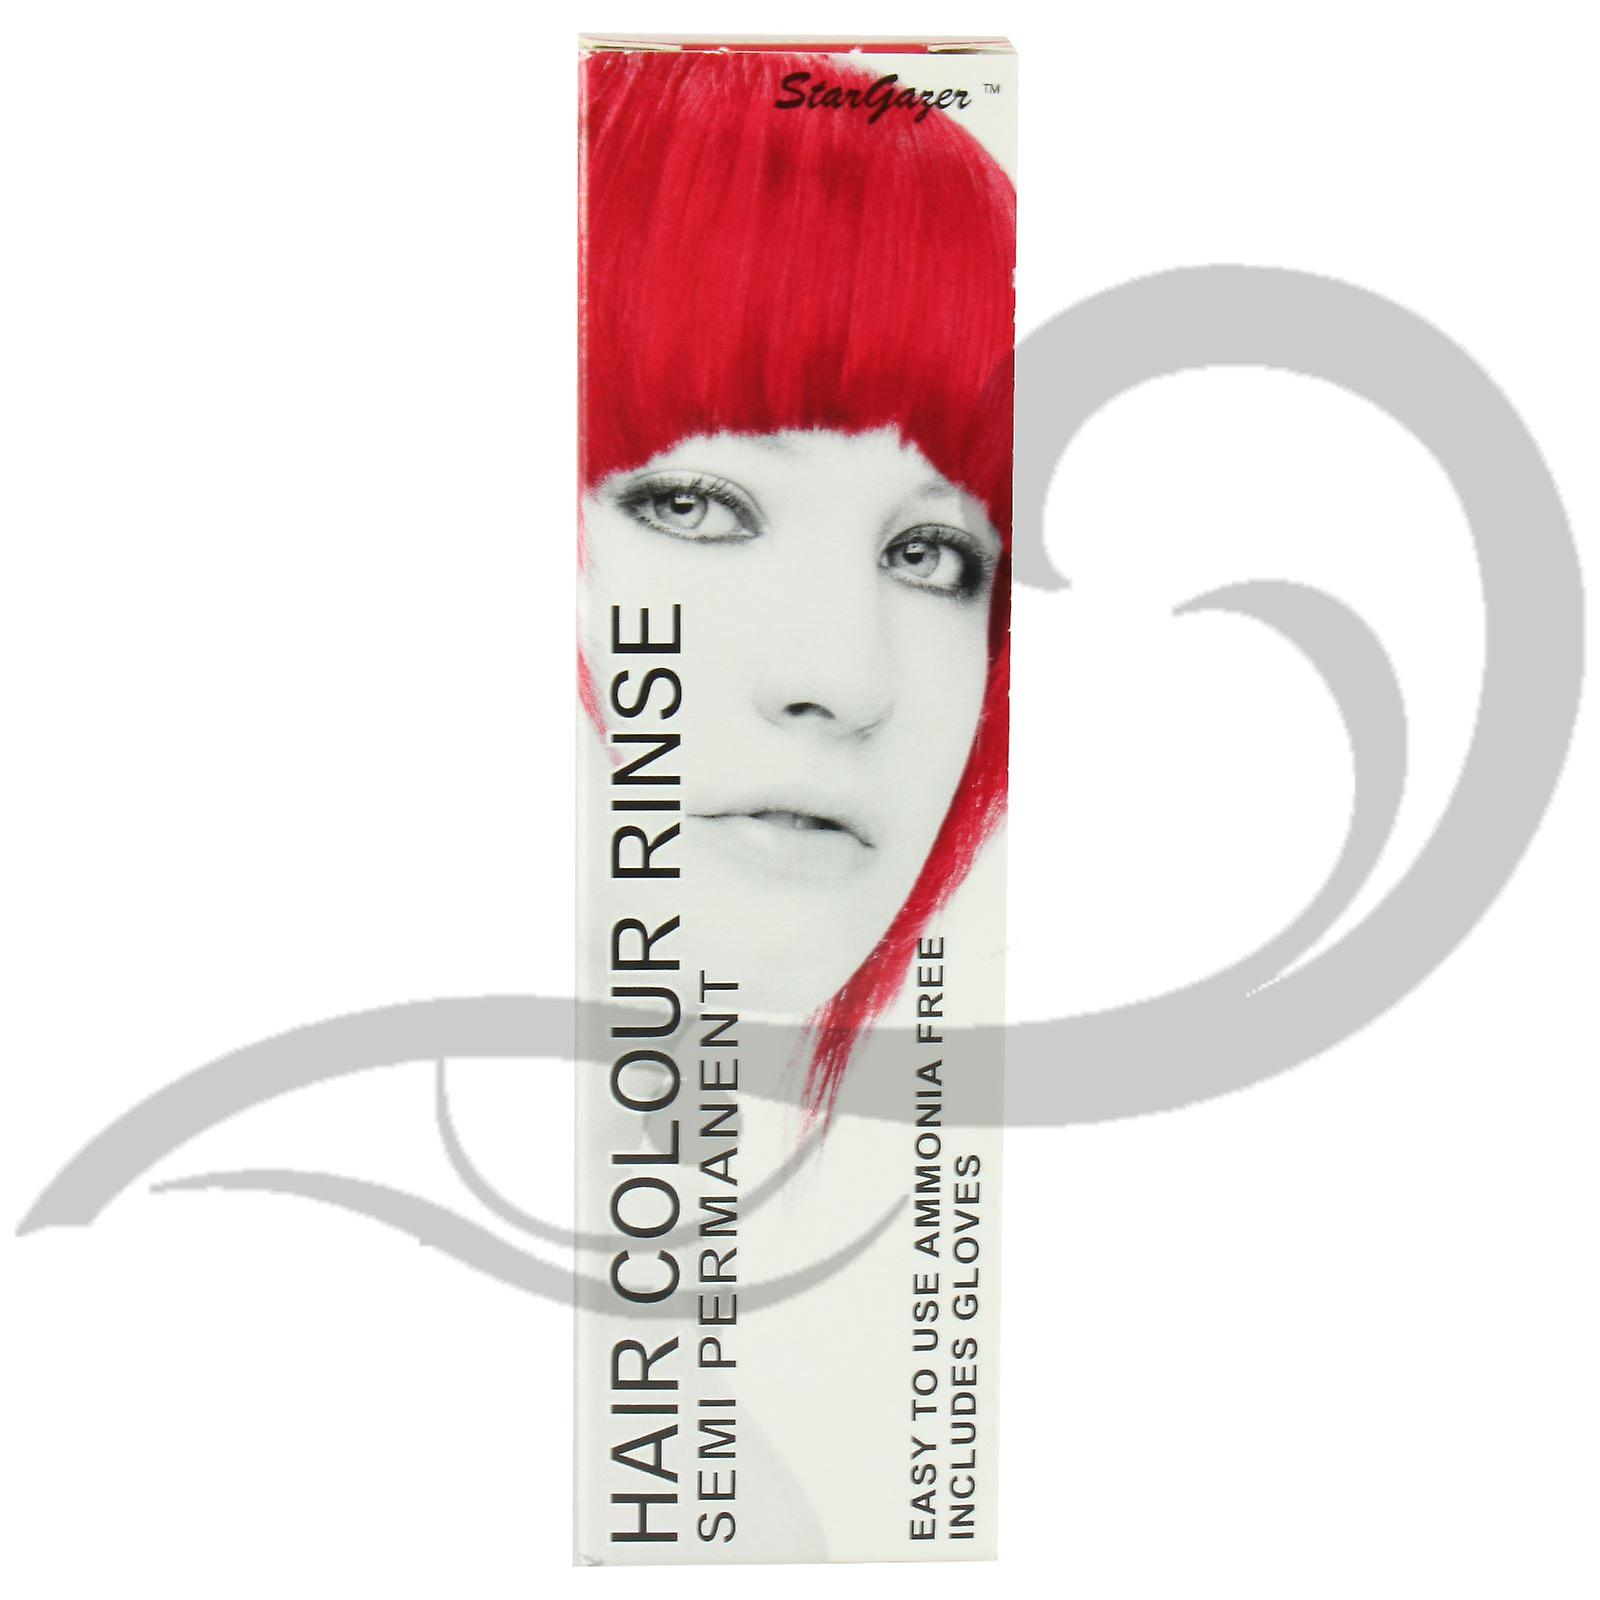 Stargazer Hair Dye -  Rouge With Tint Brush